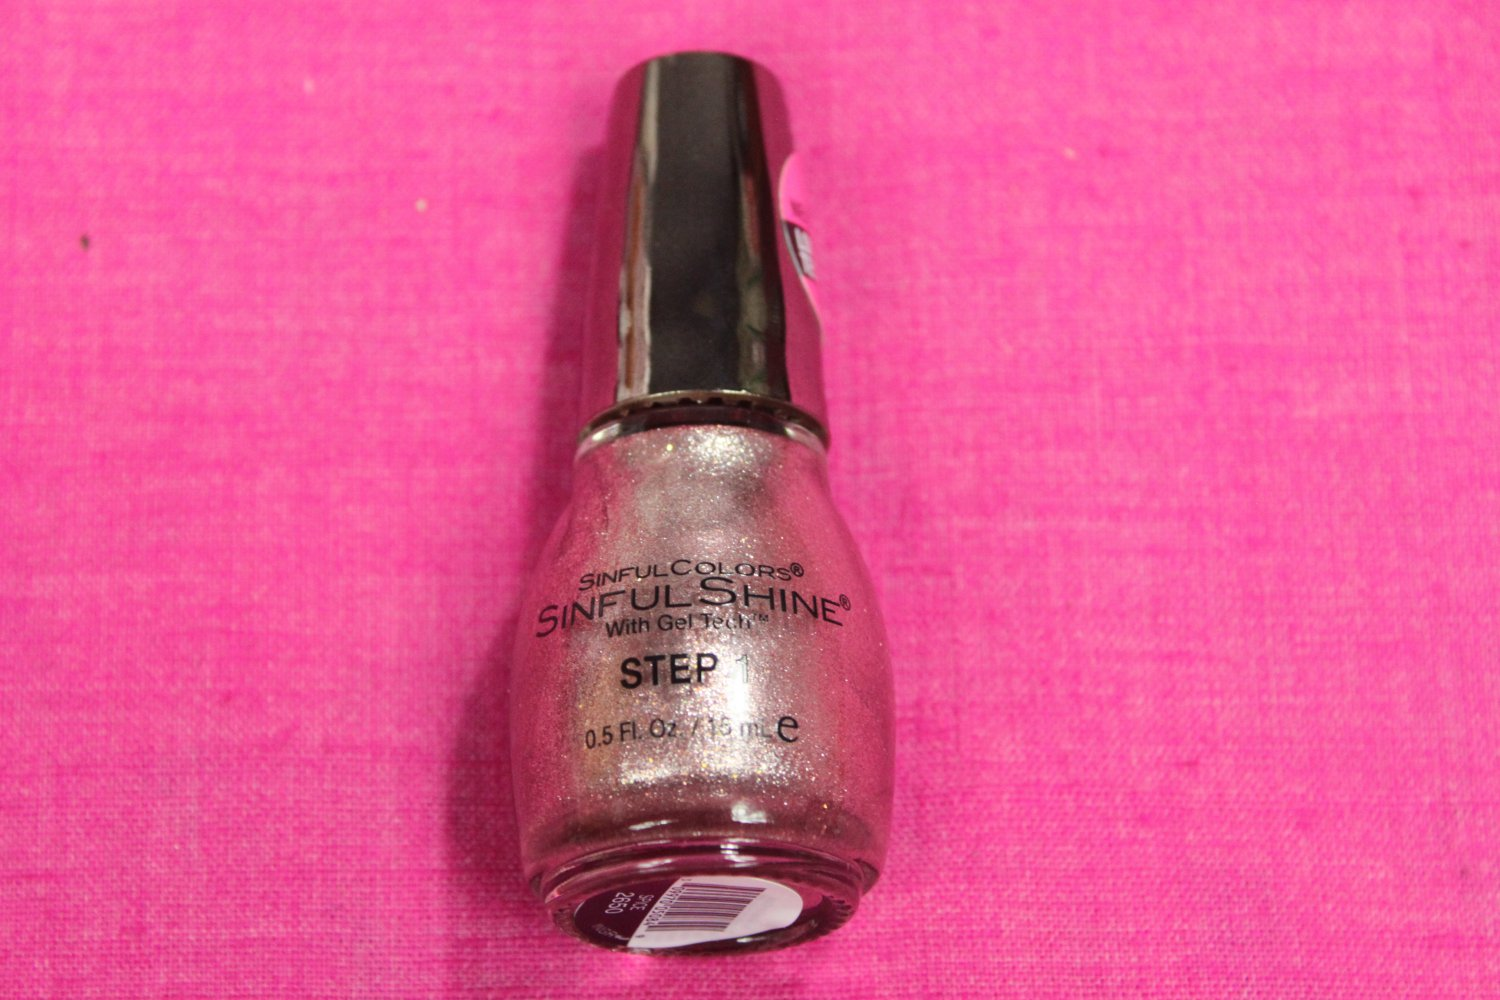 Sinful Colors Sinful Shine with Gel Tech Nail Polish #2650 SPICE